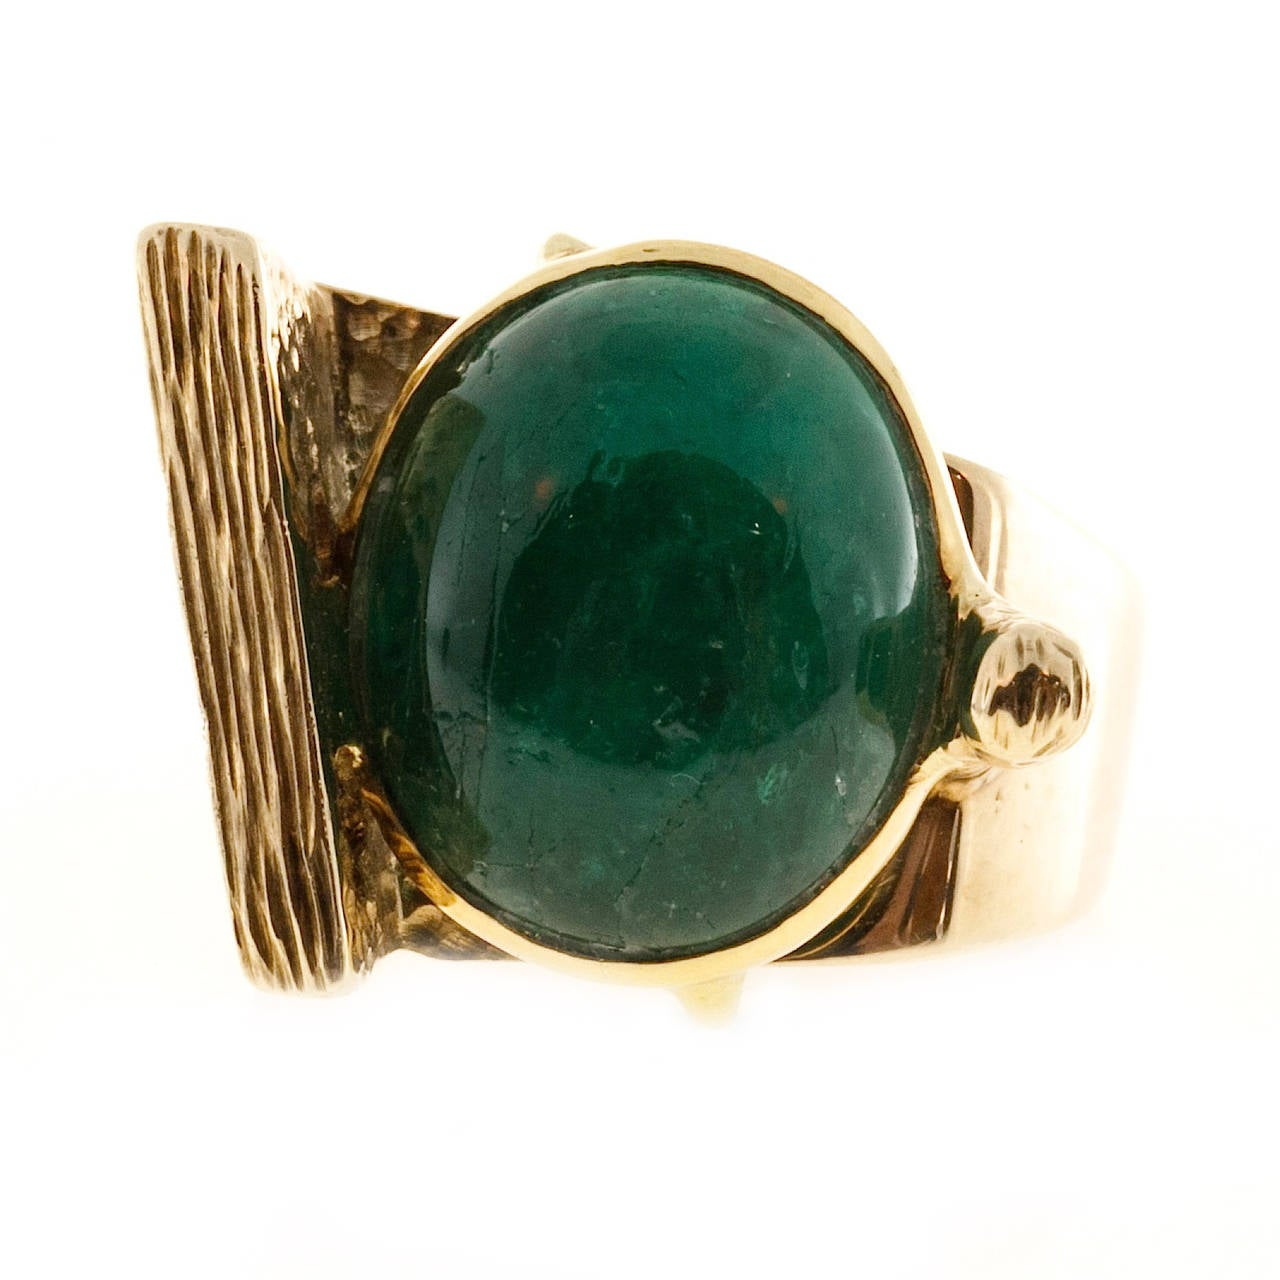 1950s Jordin Cabochon Emerald Gold Bezel Set Cocktail Ring For Sale 3